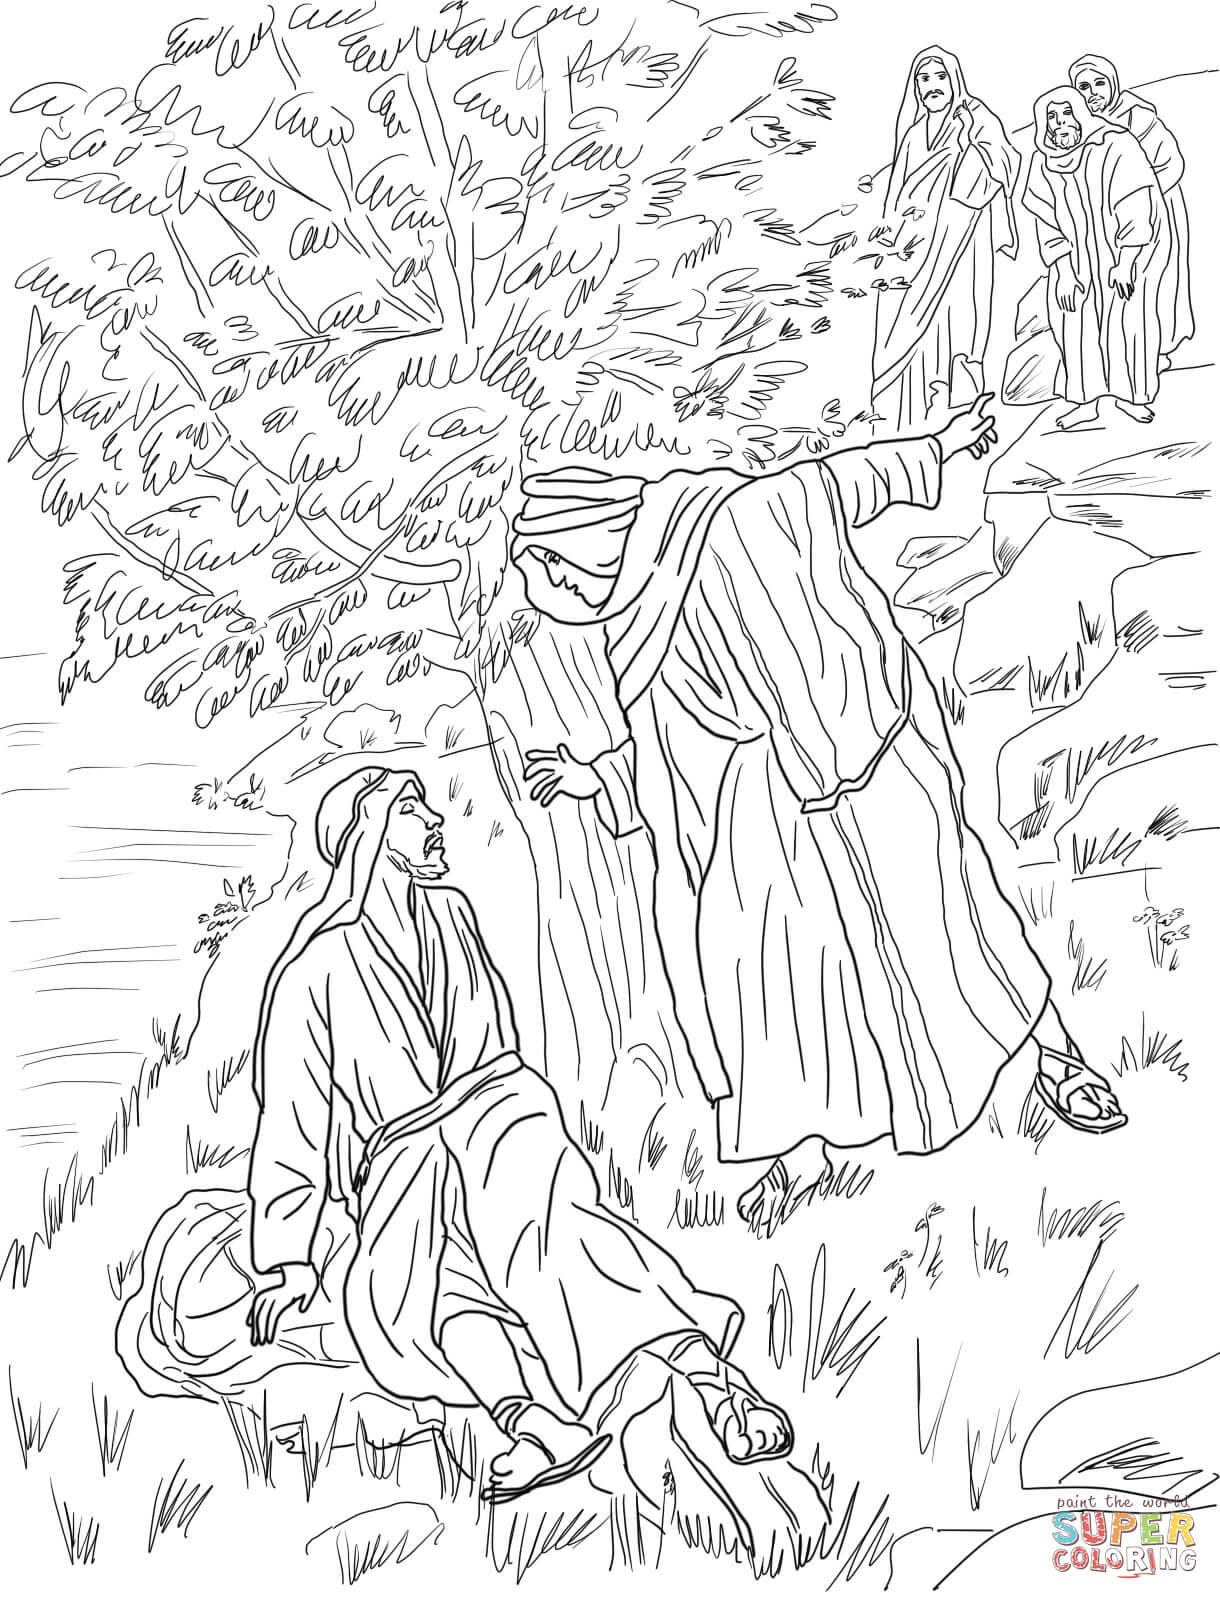 peter and andrew meet jesus coloring page peter and dorcas coloring page free printable coloring pages meet andrew peter coloring page and jesus